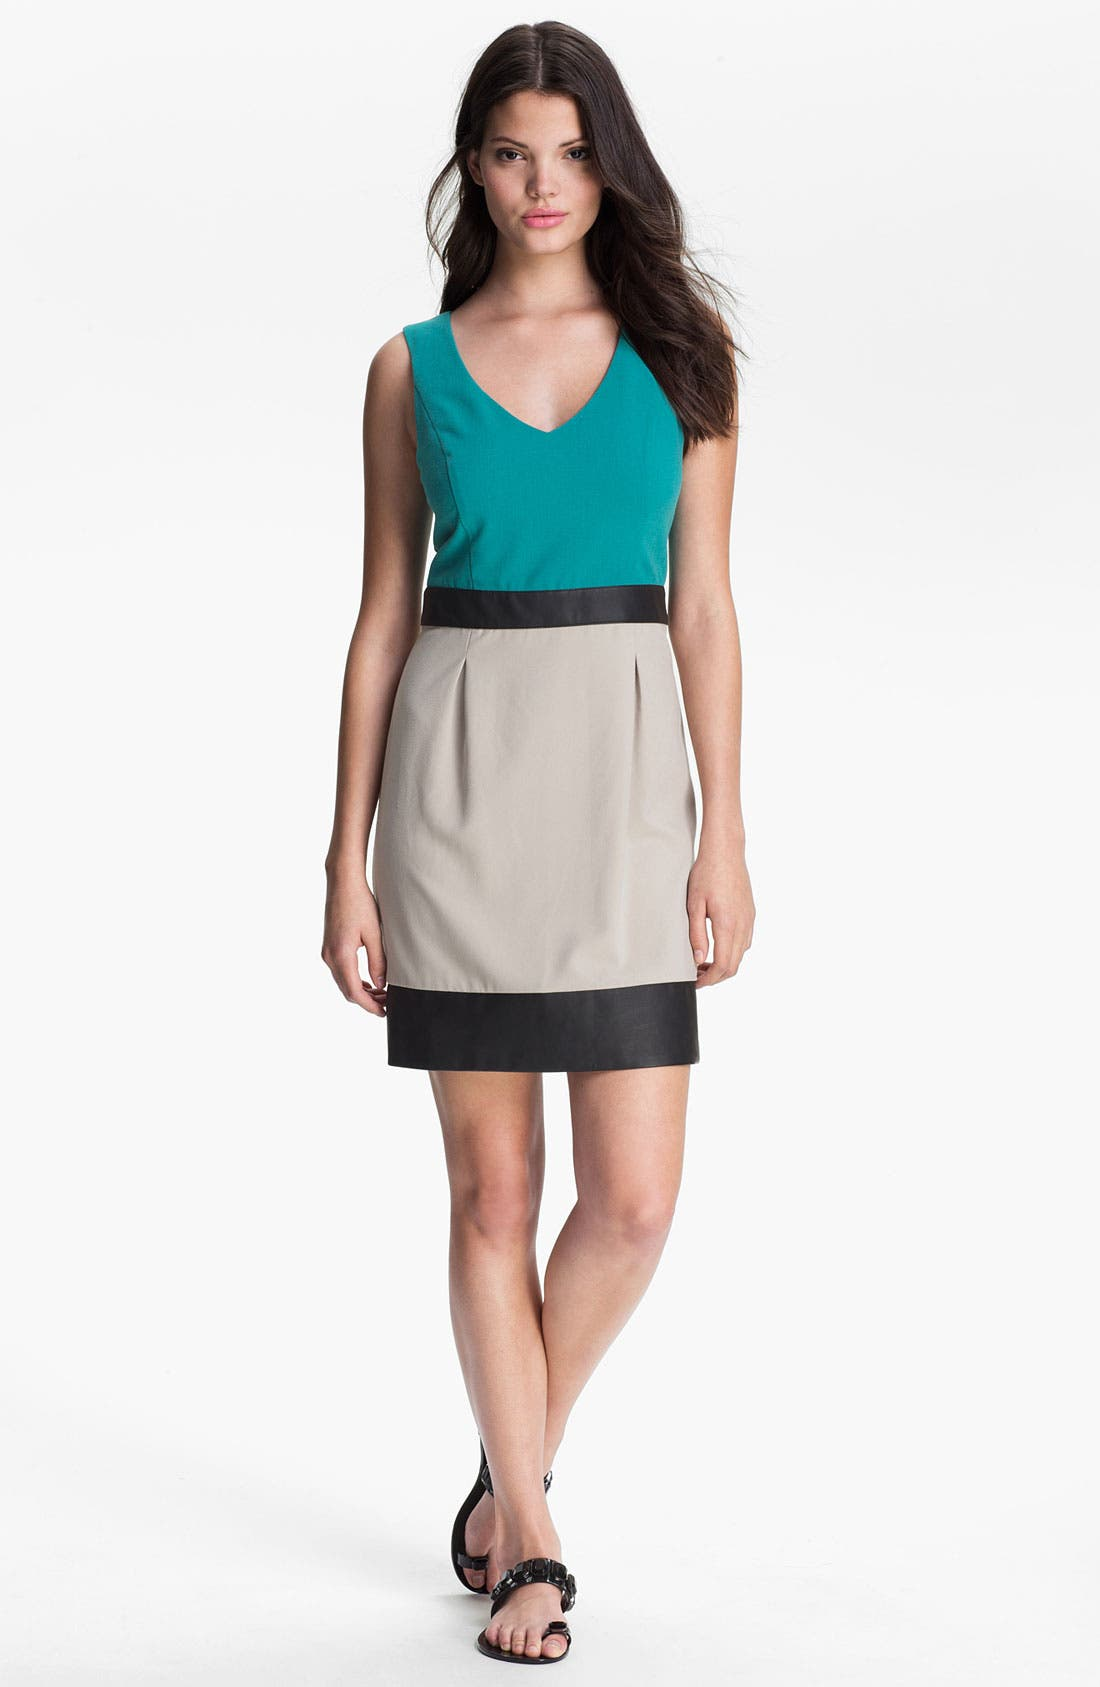 Main Image - Kensie Faux Leather Trim Colorblock Dress